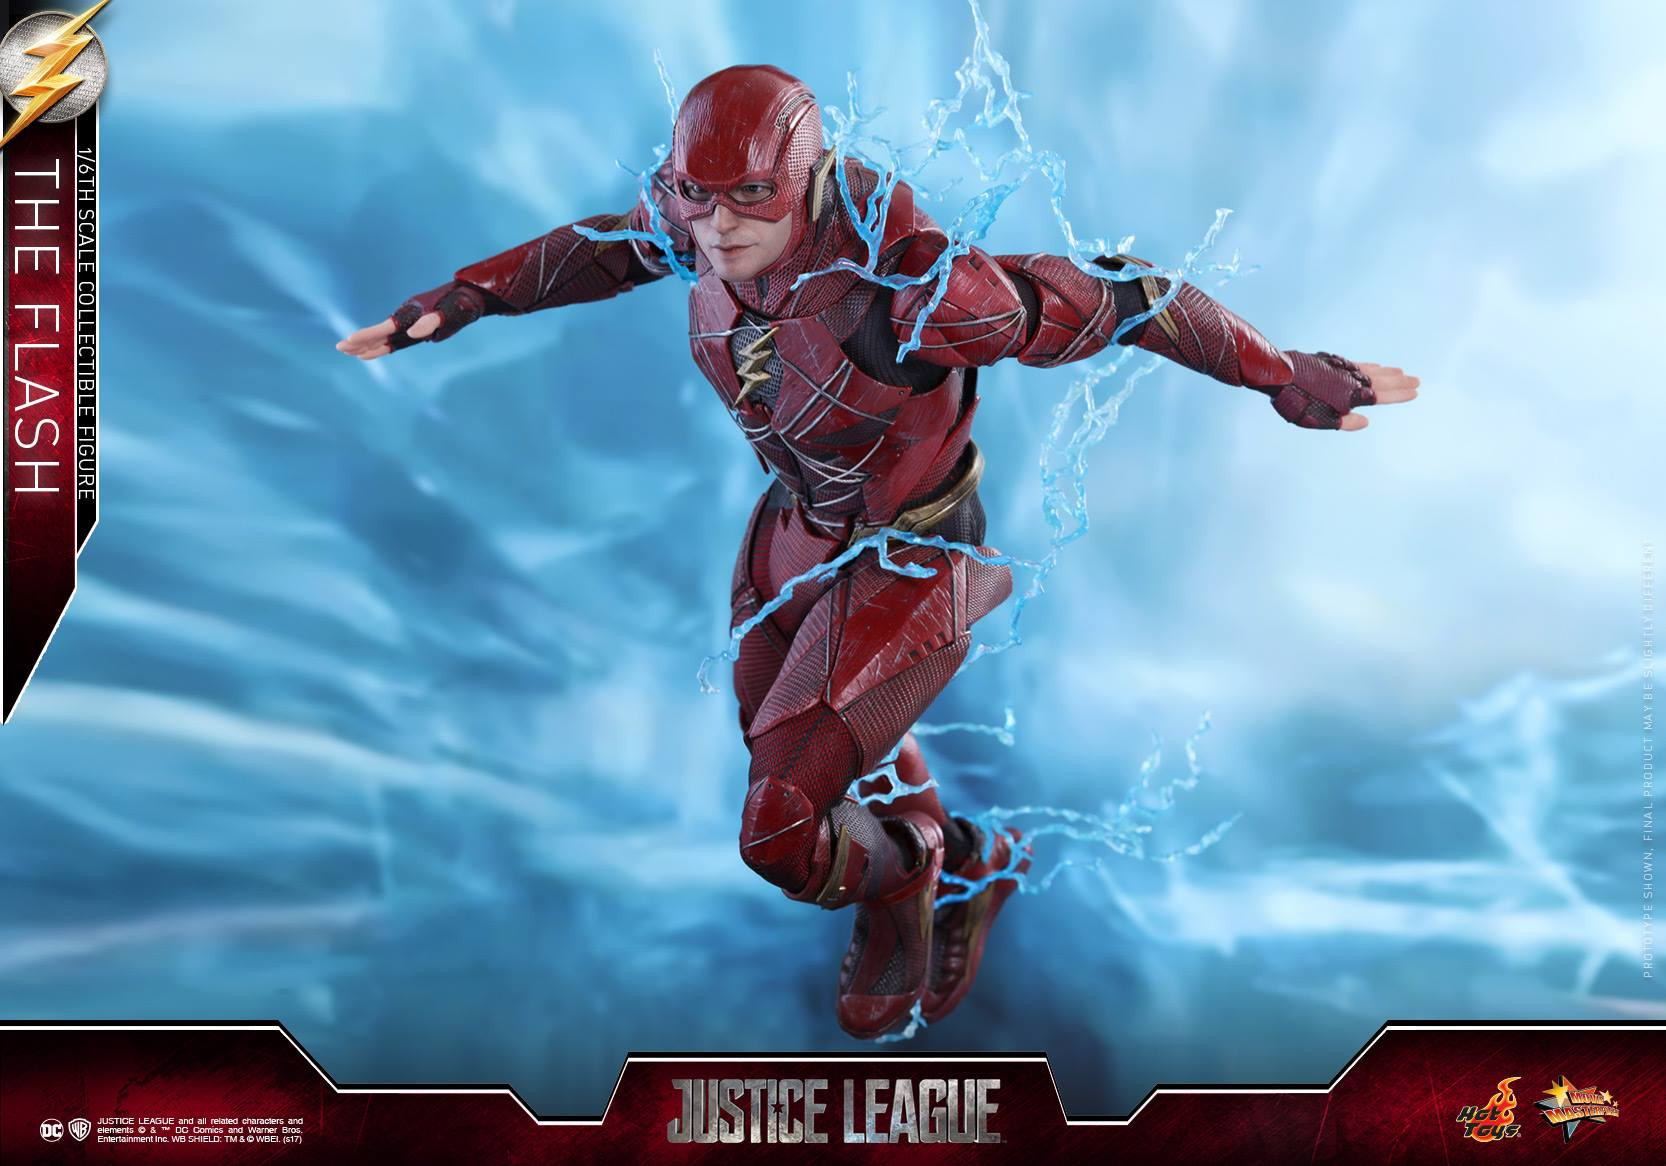 Hot-Toys-Justice-League-The-Flash-001